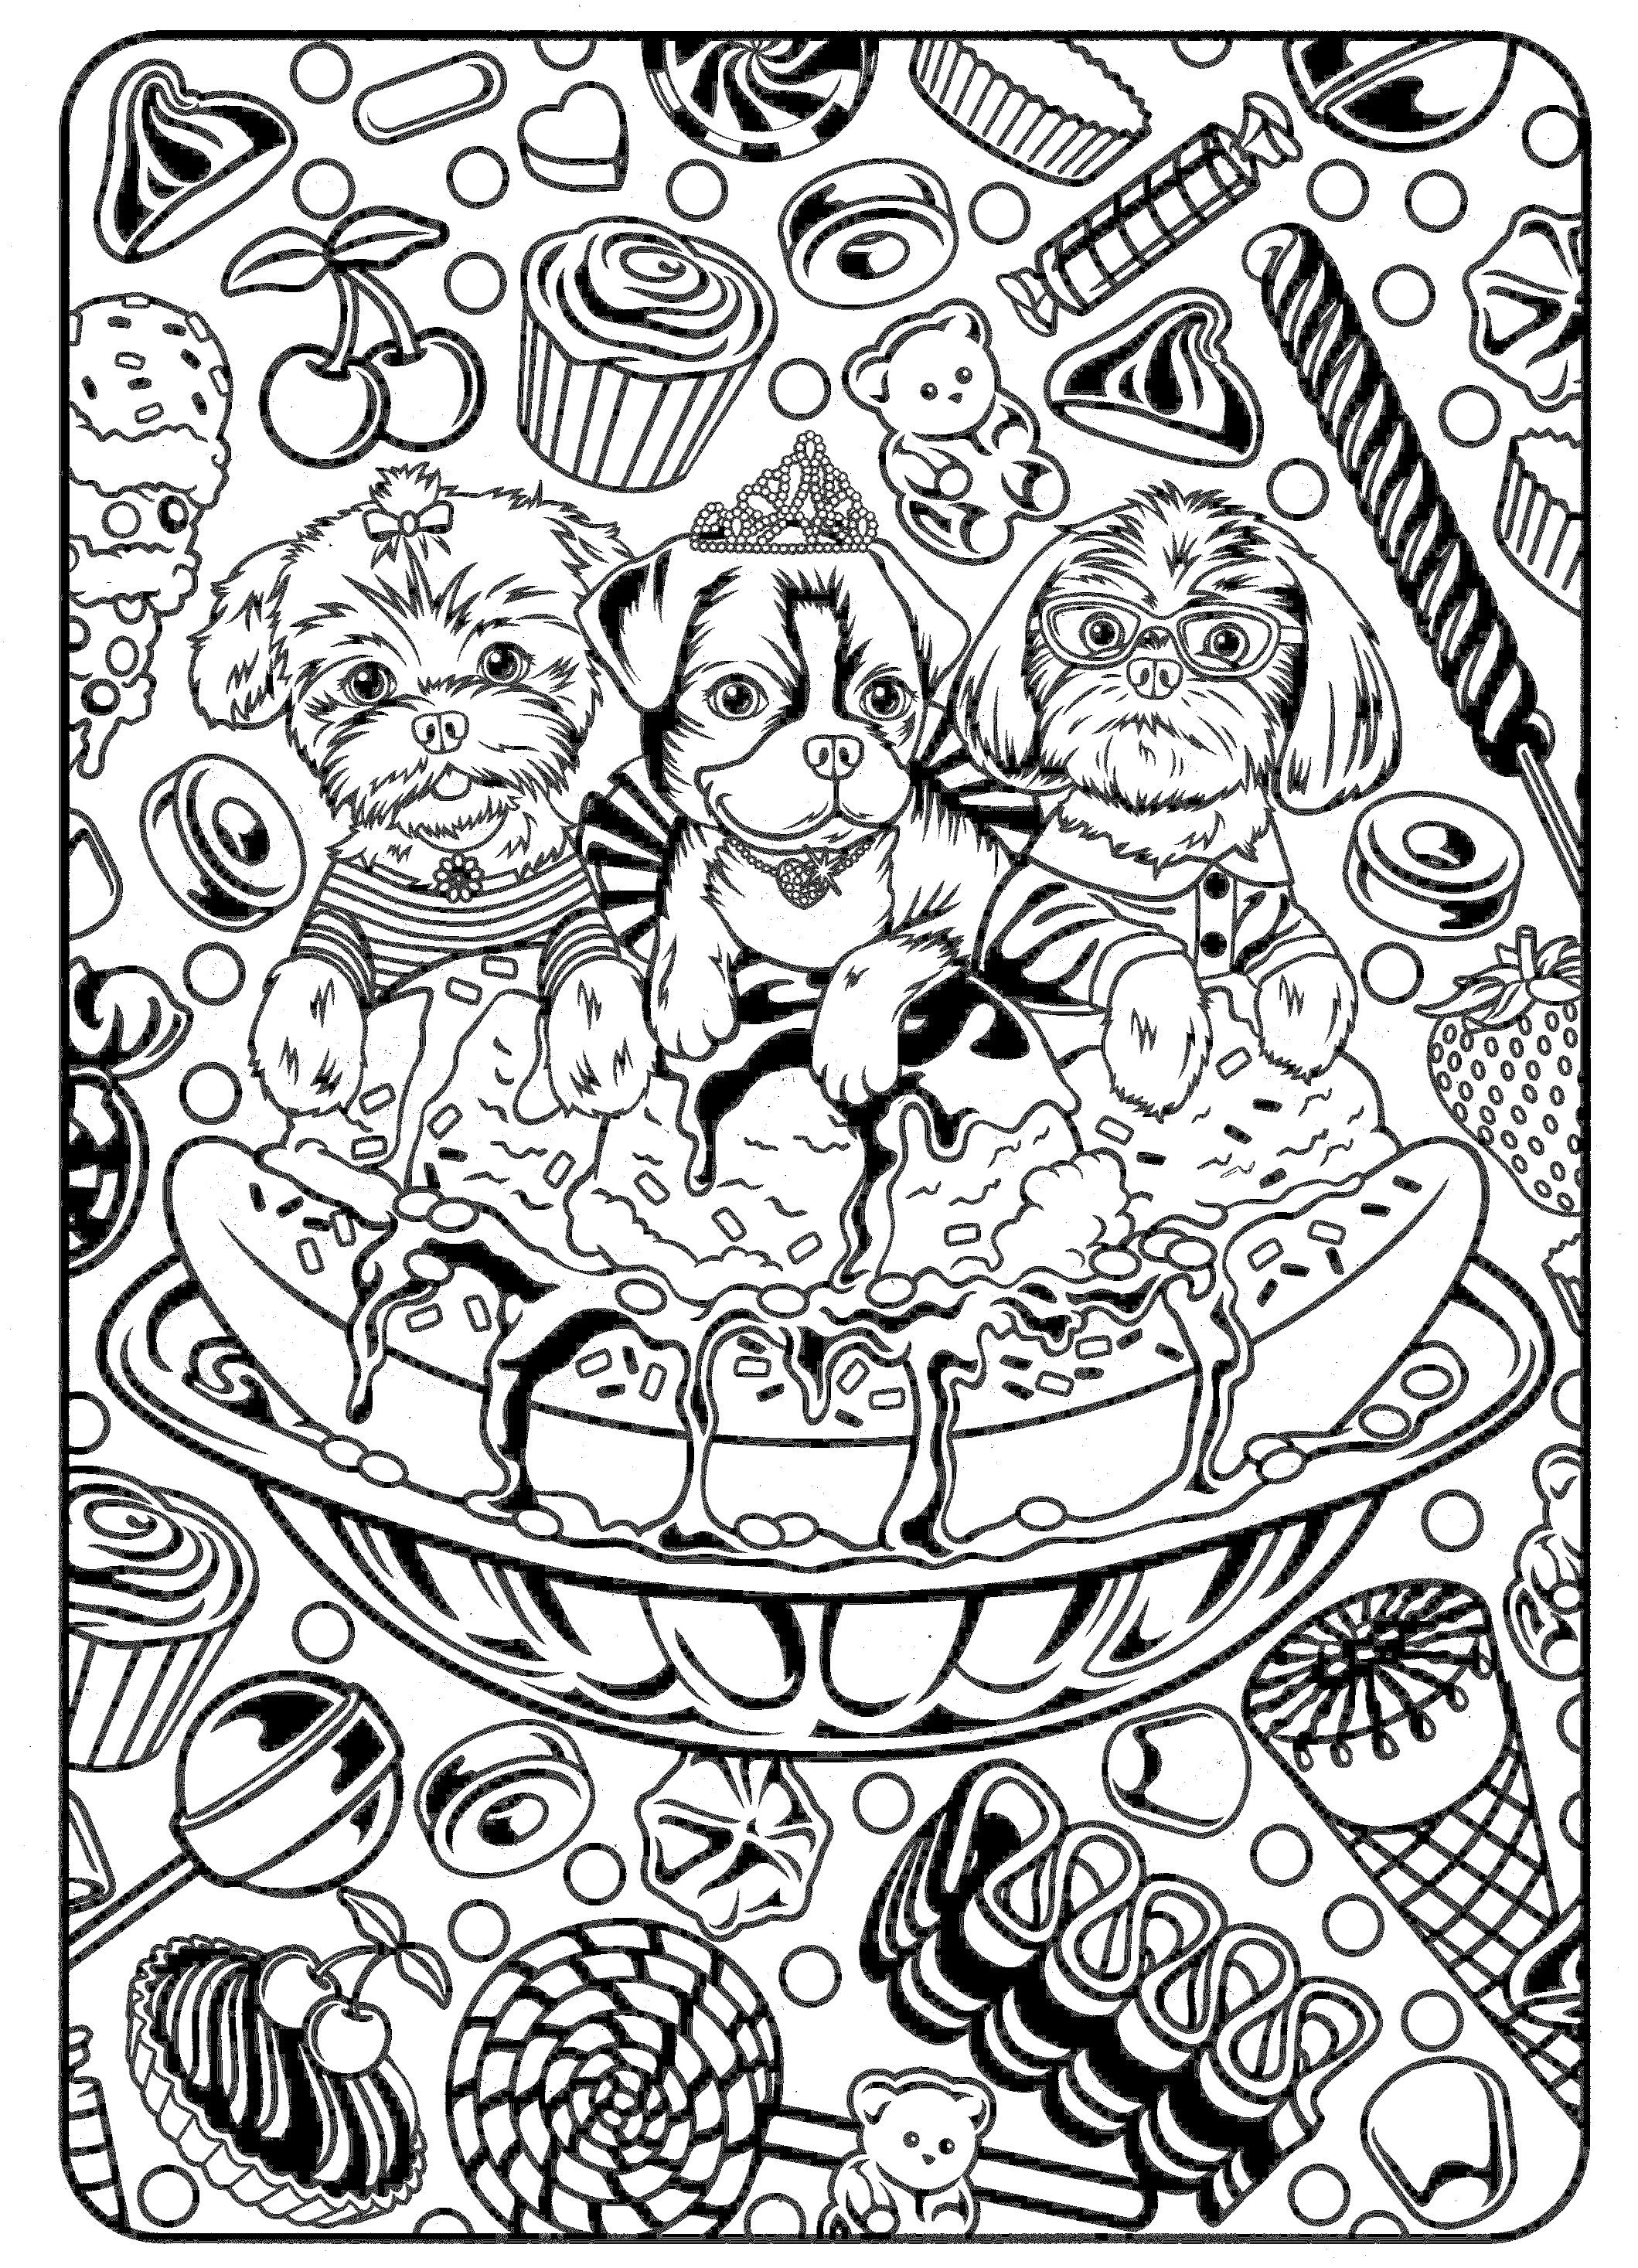 Funny Animals Coloring Page Cute Dog Coloring Pages Printable Free Cool Coloring Pages Summer Coloring Pages Pokemon Coloring Pages